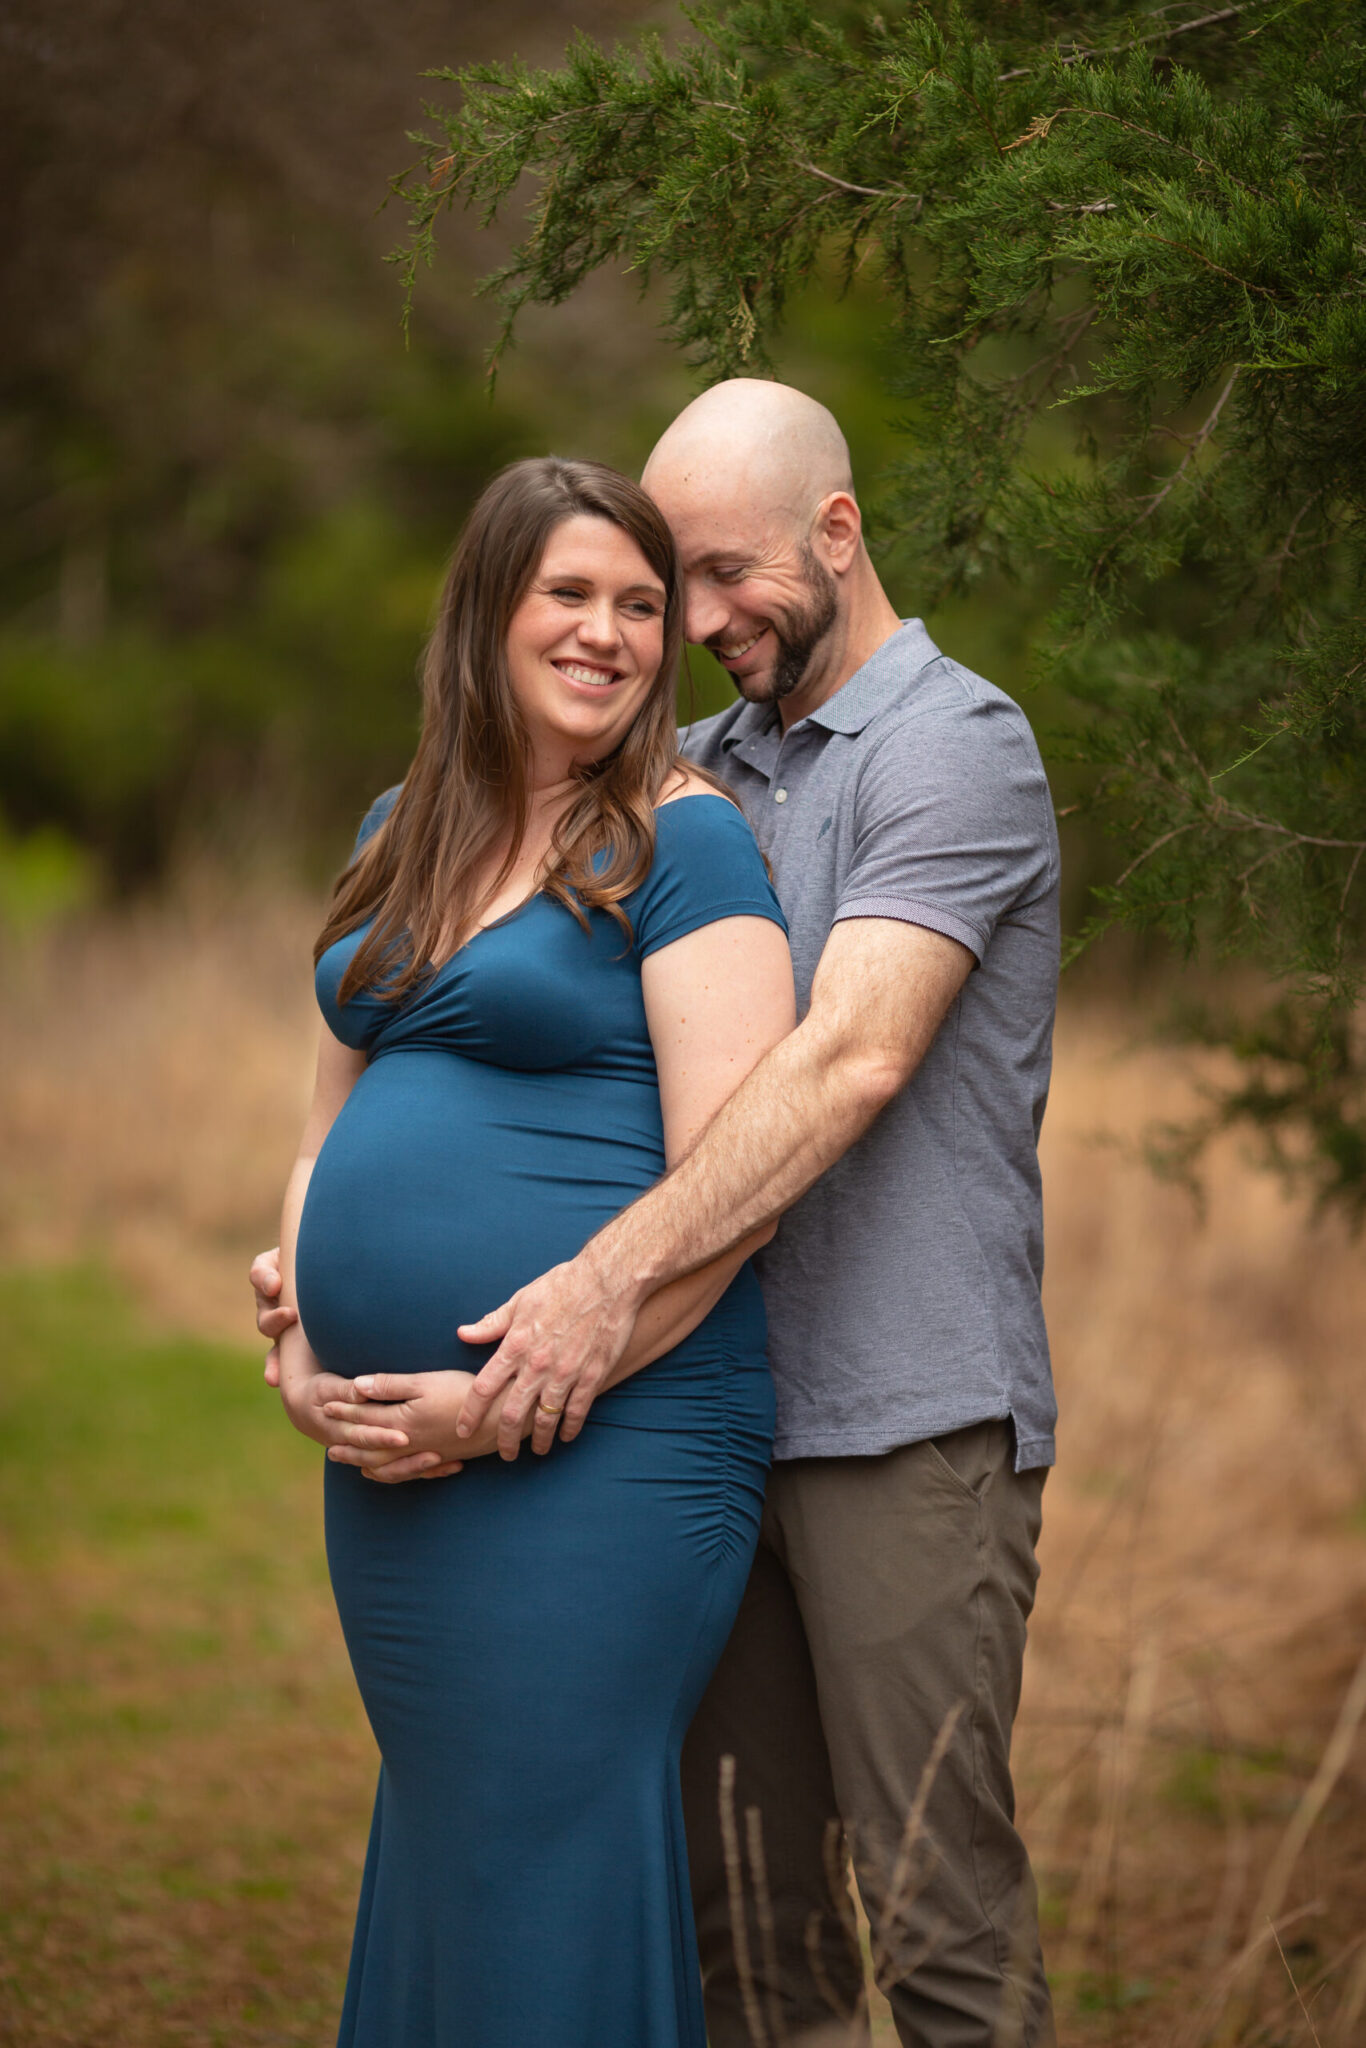 Maternity Portraits in Durham, NC